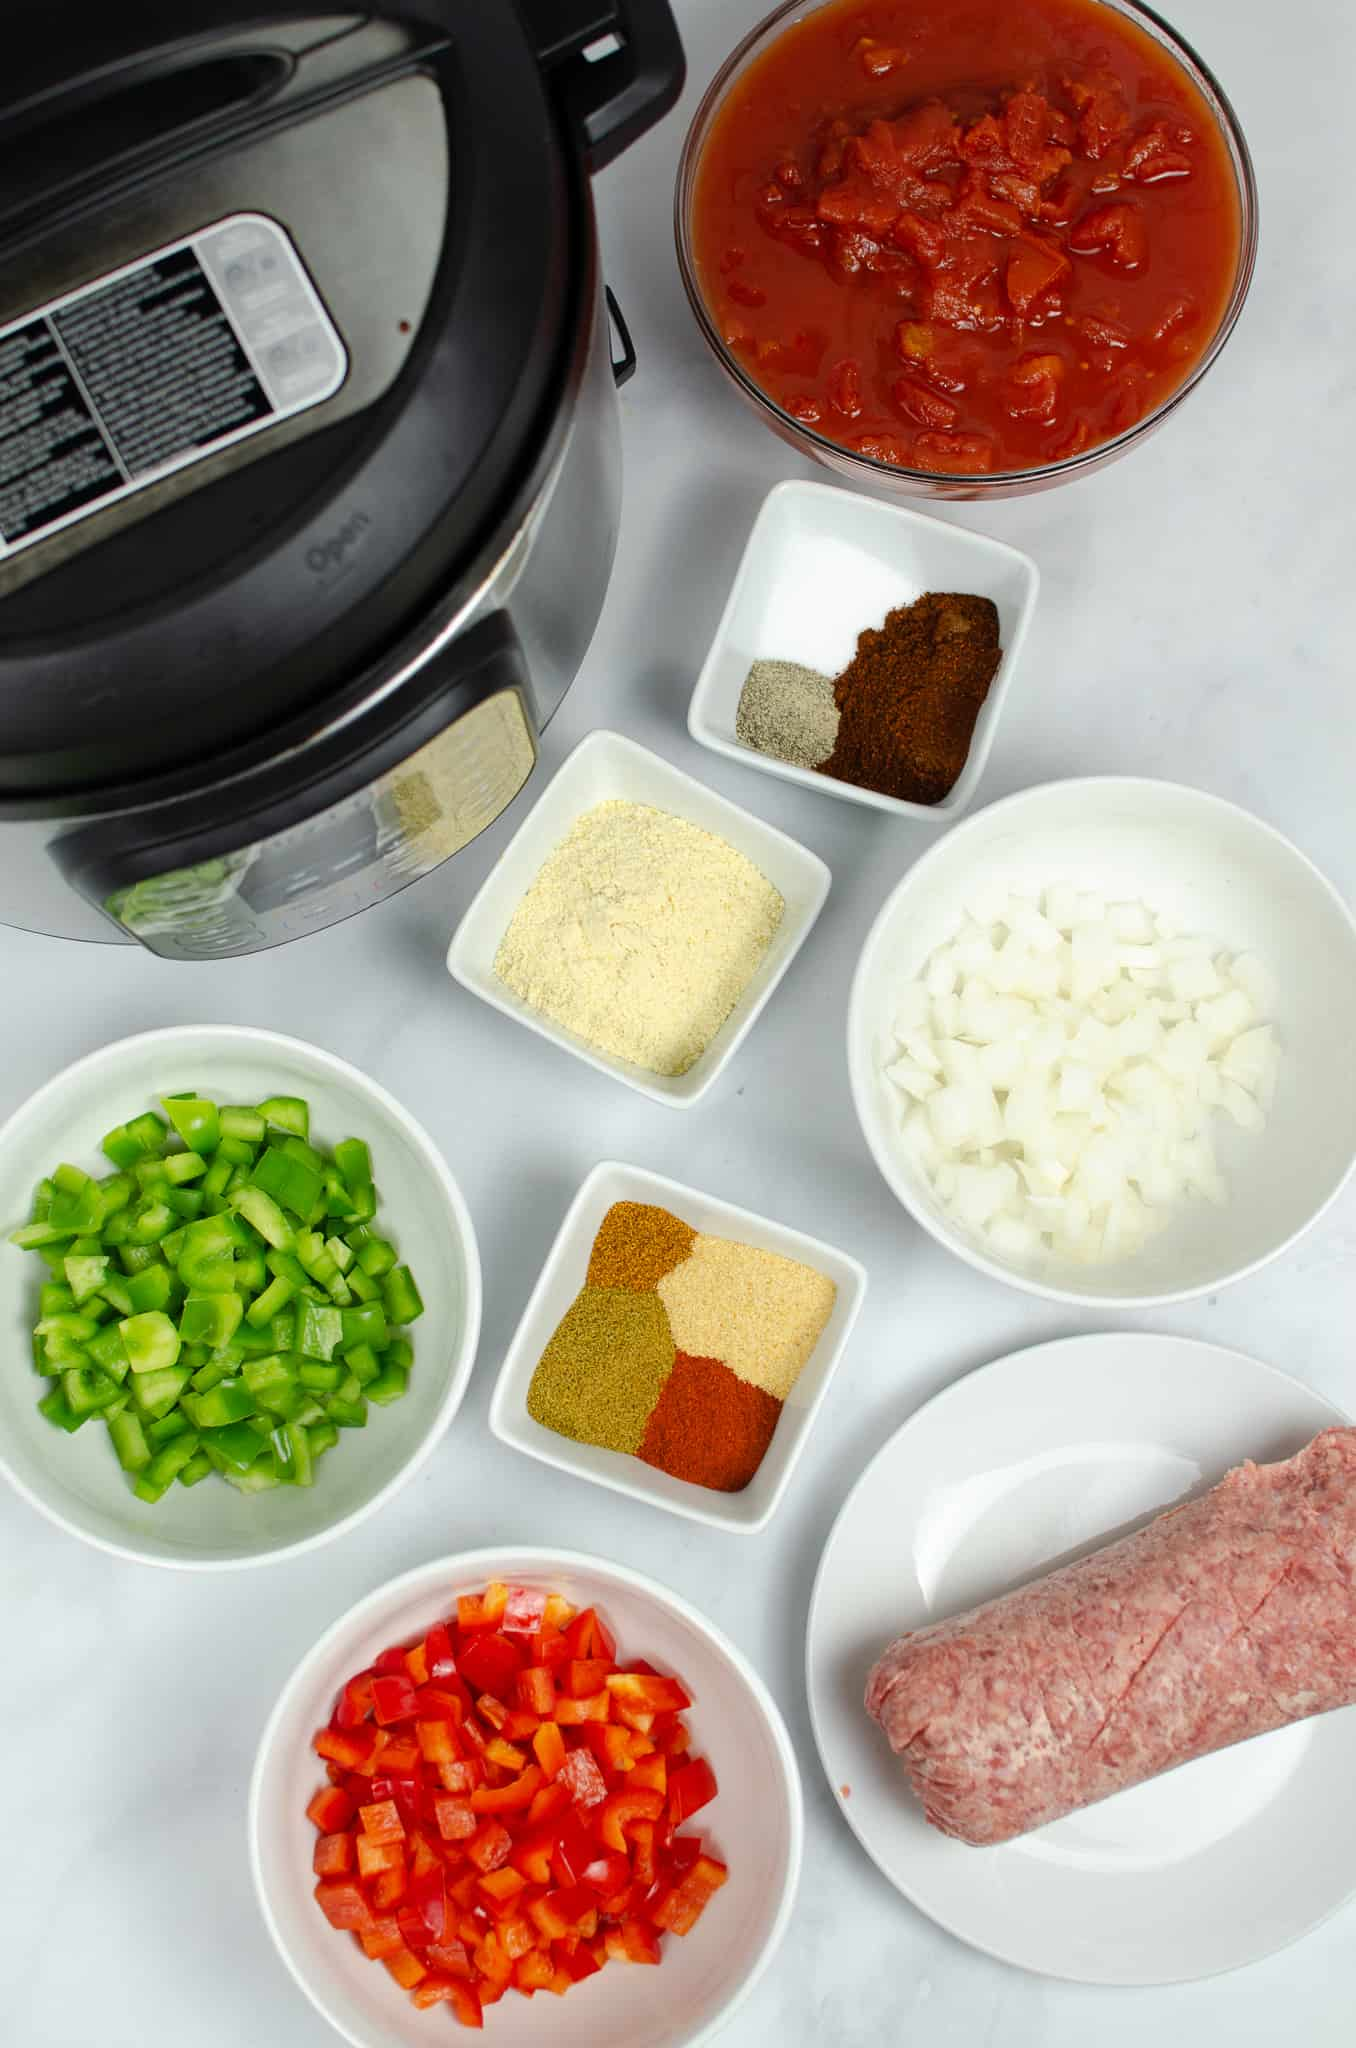 Ingredients and Instant Pot